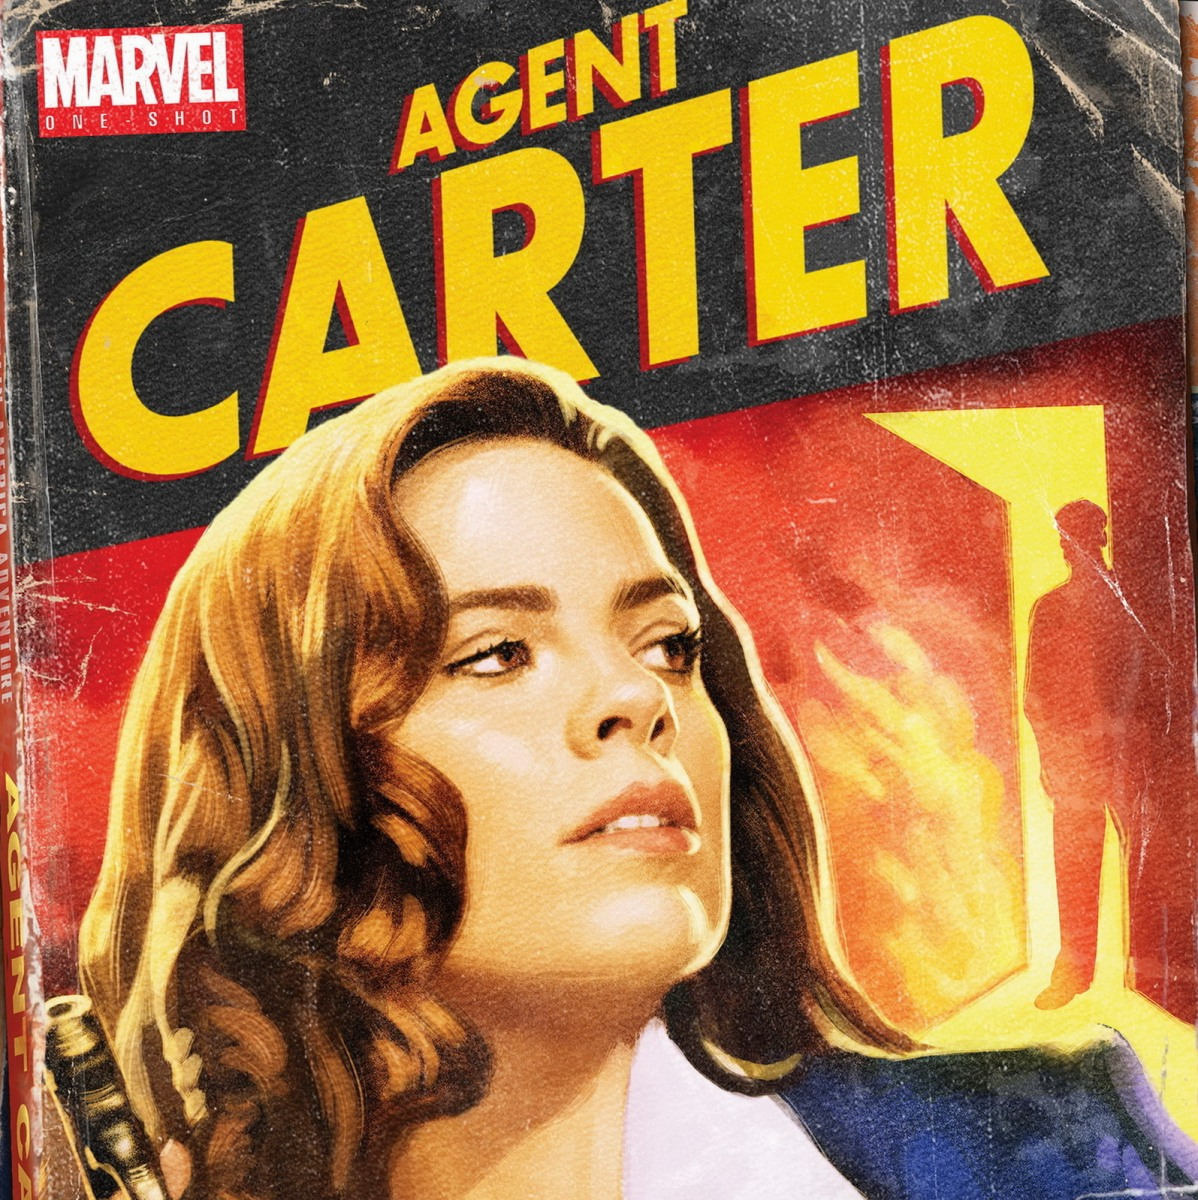 NYCC Recap - Day Two: 'Agent Carter,' New 'GOTG' Series, 'Case Closed' Streaming & More